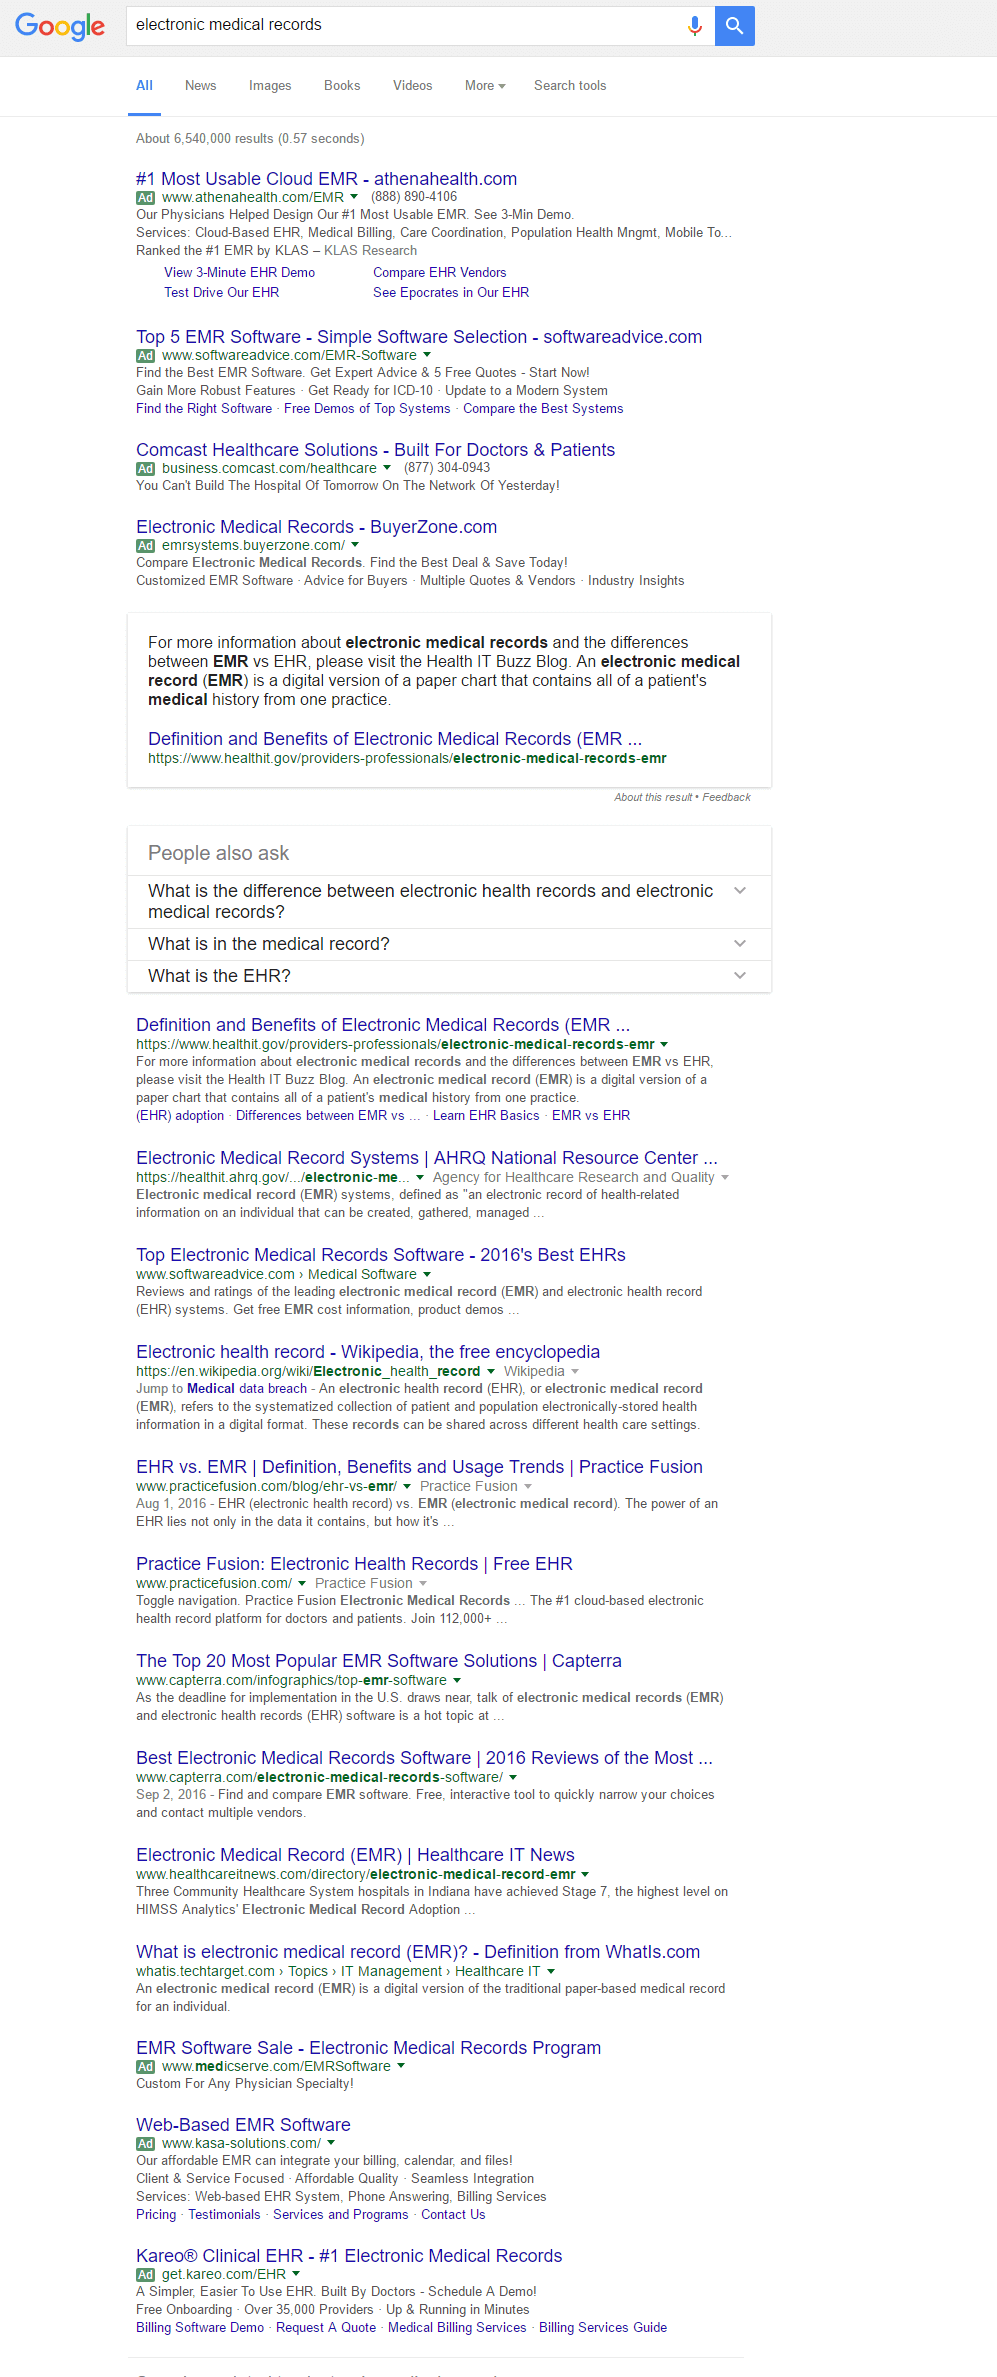 electronic medical records SERP